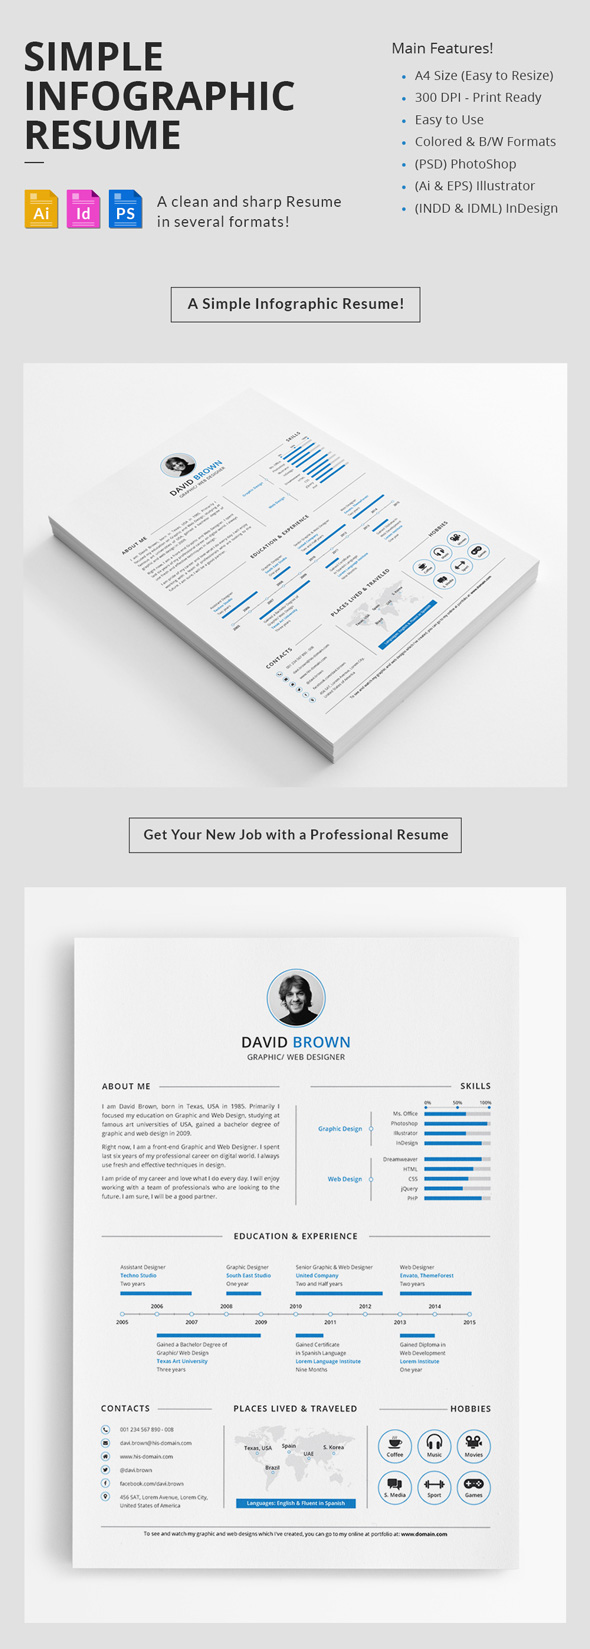 Minimal Resume Template Design  Cool Resume Designs